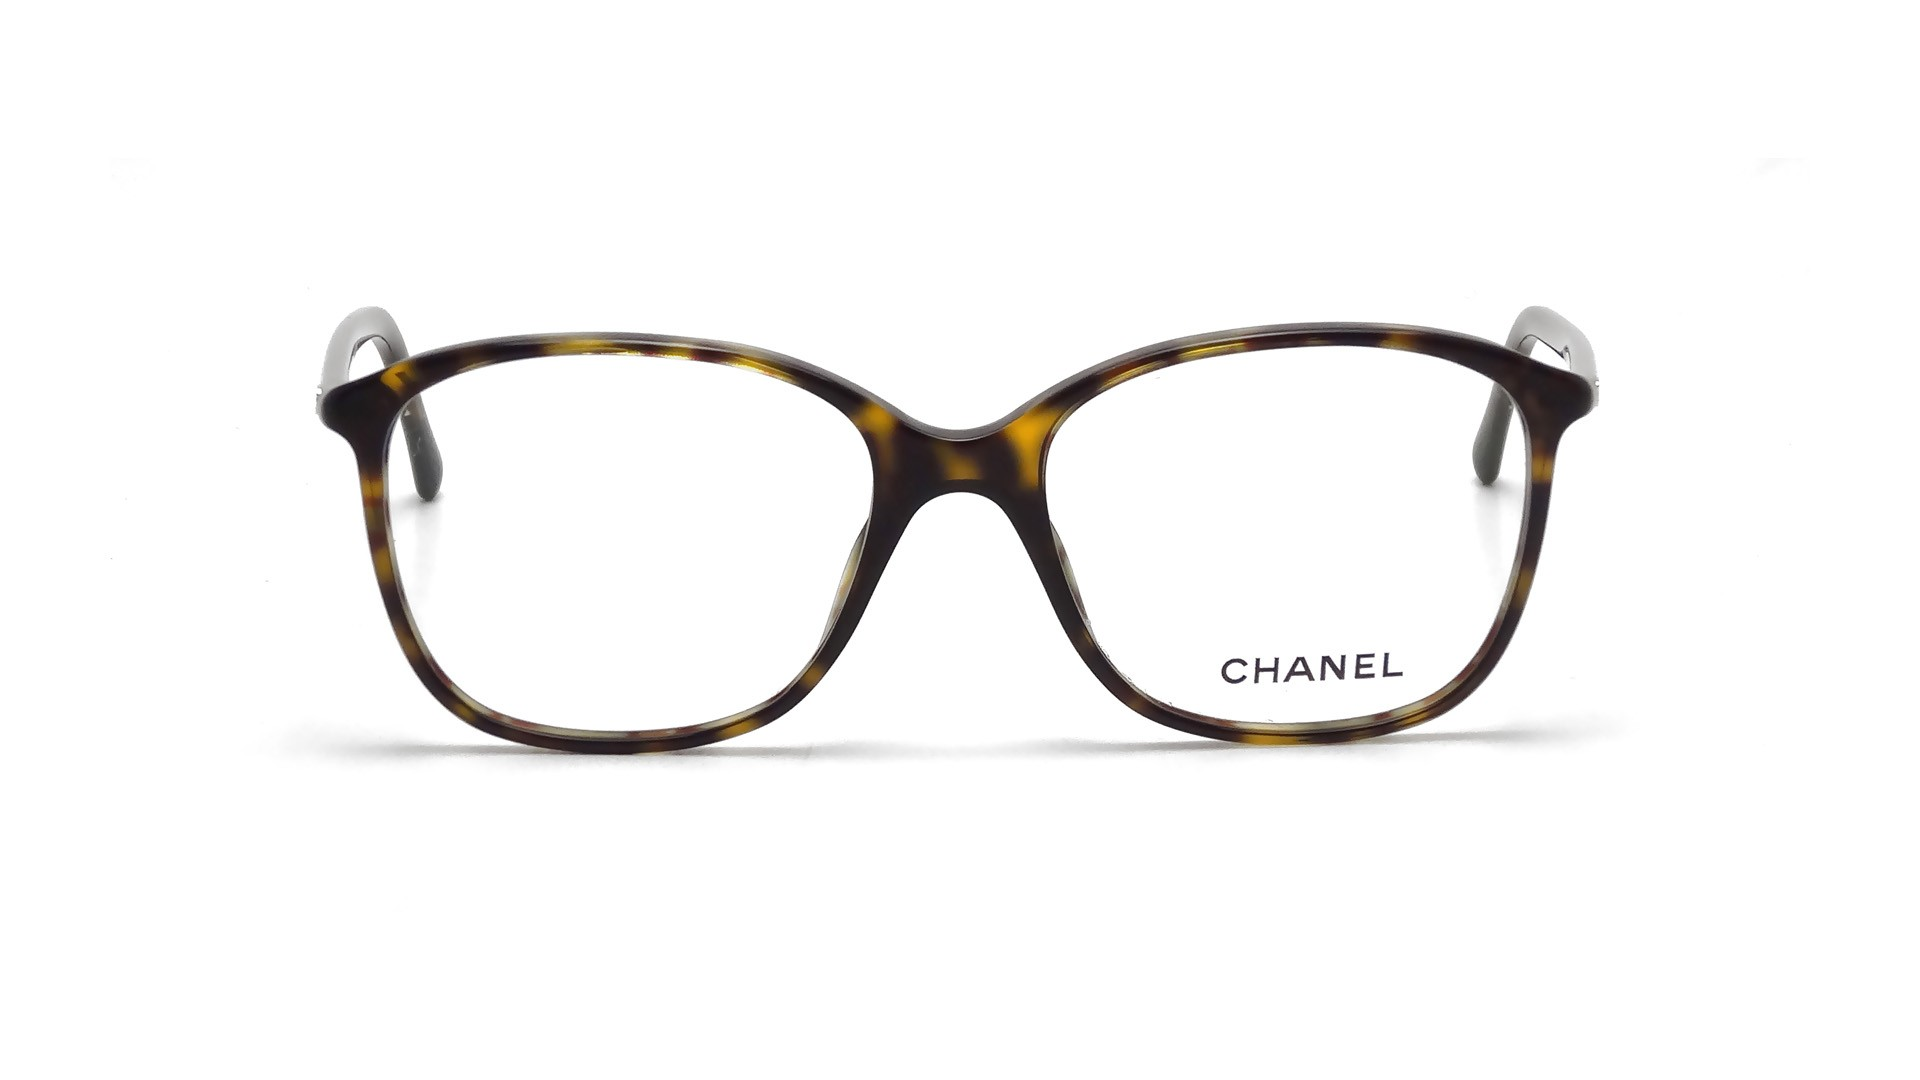 5a1cfca3ca Chanel Glasses Asian Fit